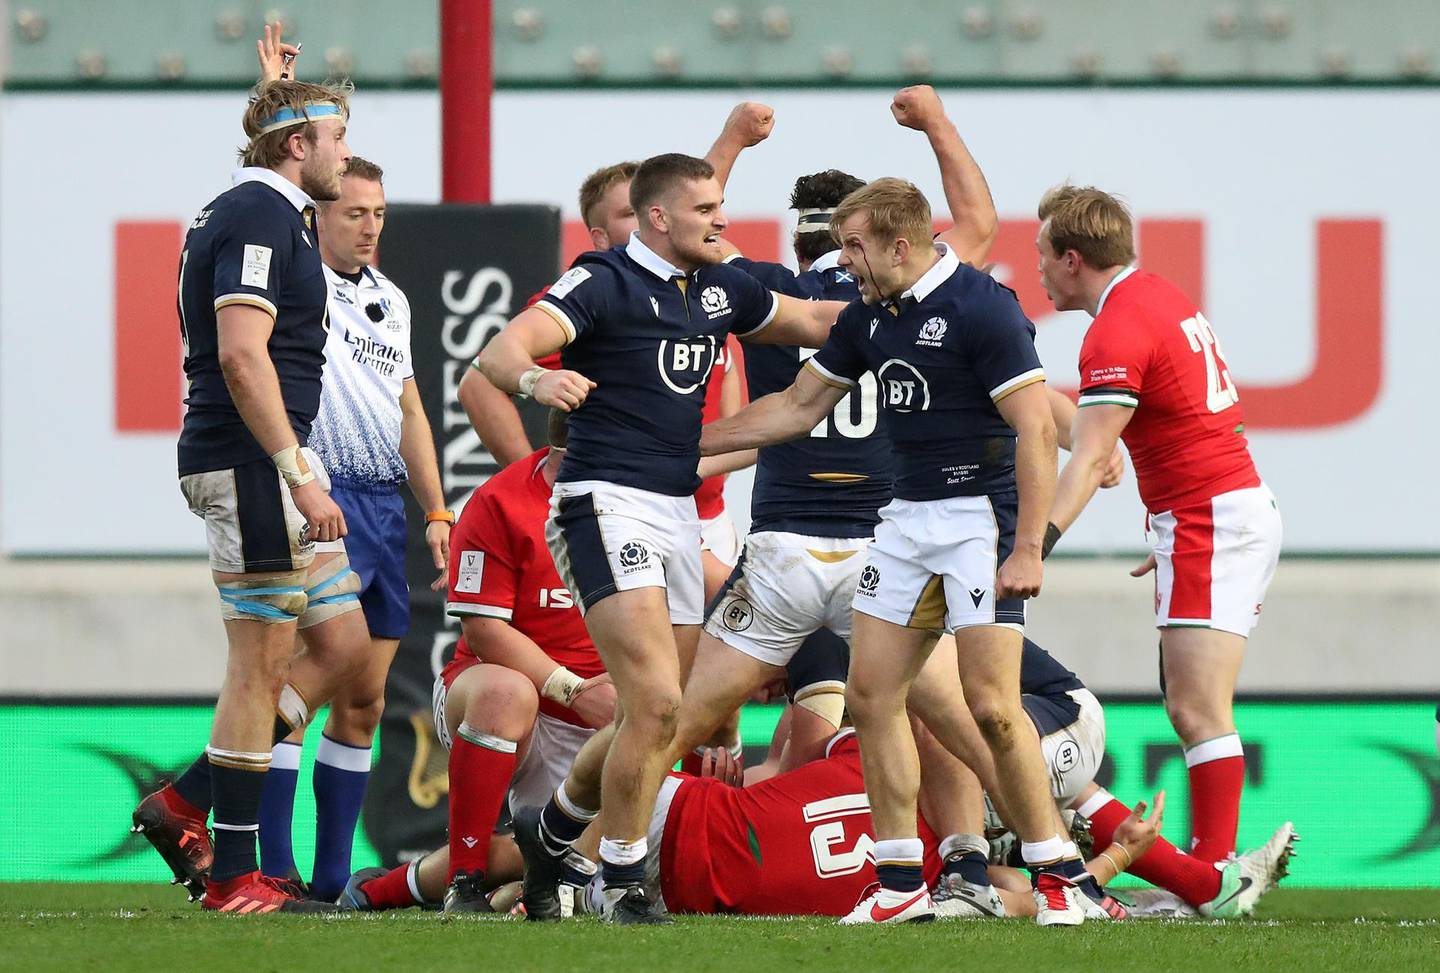 LLANELLI, WALES - OCTOBER 31: James Lang of Scotland (2L) celebrates with Scott Steele of Scotland as a penalty is awarded in final play to secure victory in  the 2020 Guinness Six Nations match between Wales and Scotland at Parc y Scarlets on October 31, 2020 in Llanelli, Wales. Sporting stadiums around the UK remain under strict restrictions due to the Coronavirus Pandemic as Government social distancing laws prohibit fans inside venues resulting in games being played behind closed doors. (Photo by David Rogers/Getty Images)